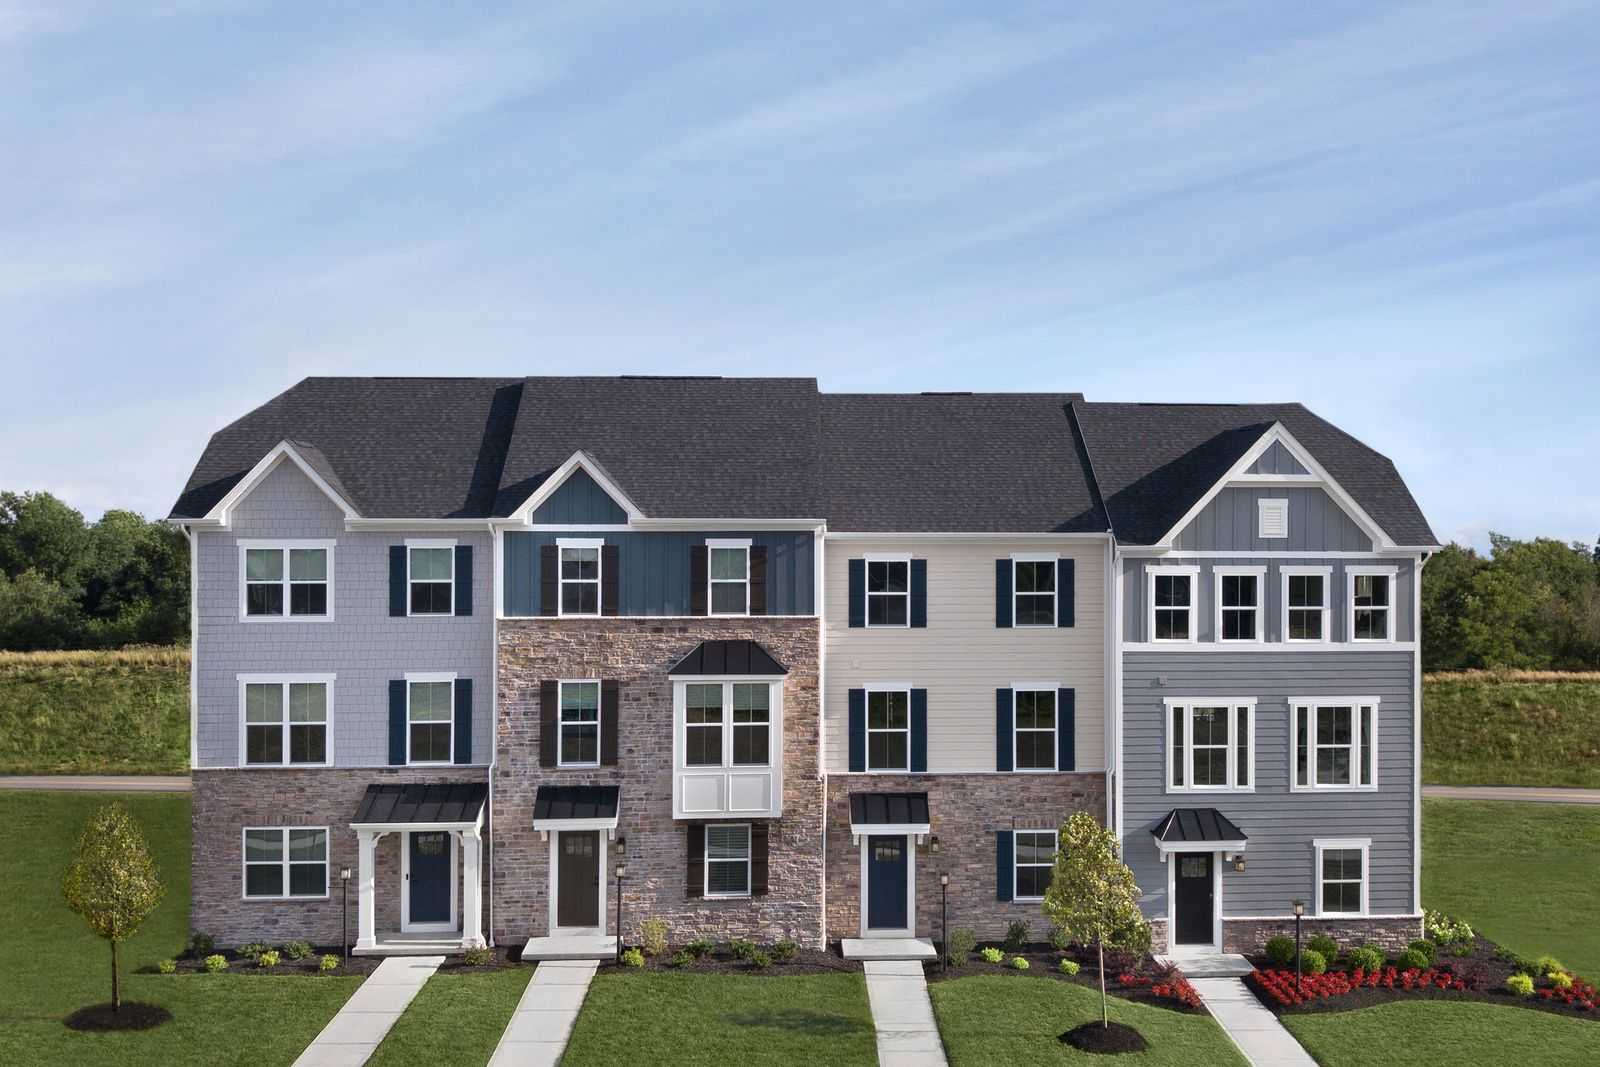 Welcome to Laurel Grove:Pine Township's best priced community with future pool, clubhouse, & walking trails. Luxury open concept townhomes.Click here to schedule your visit!